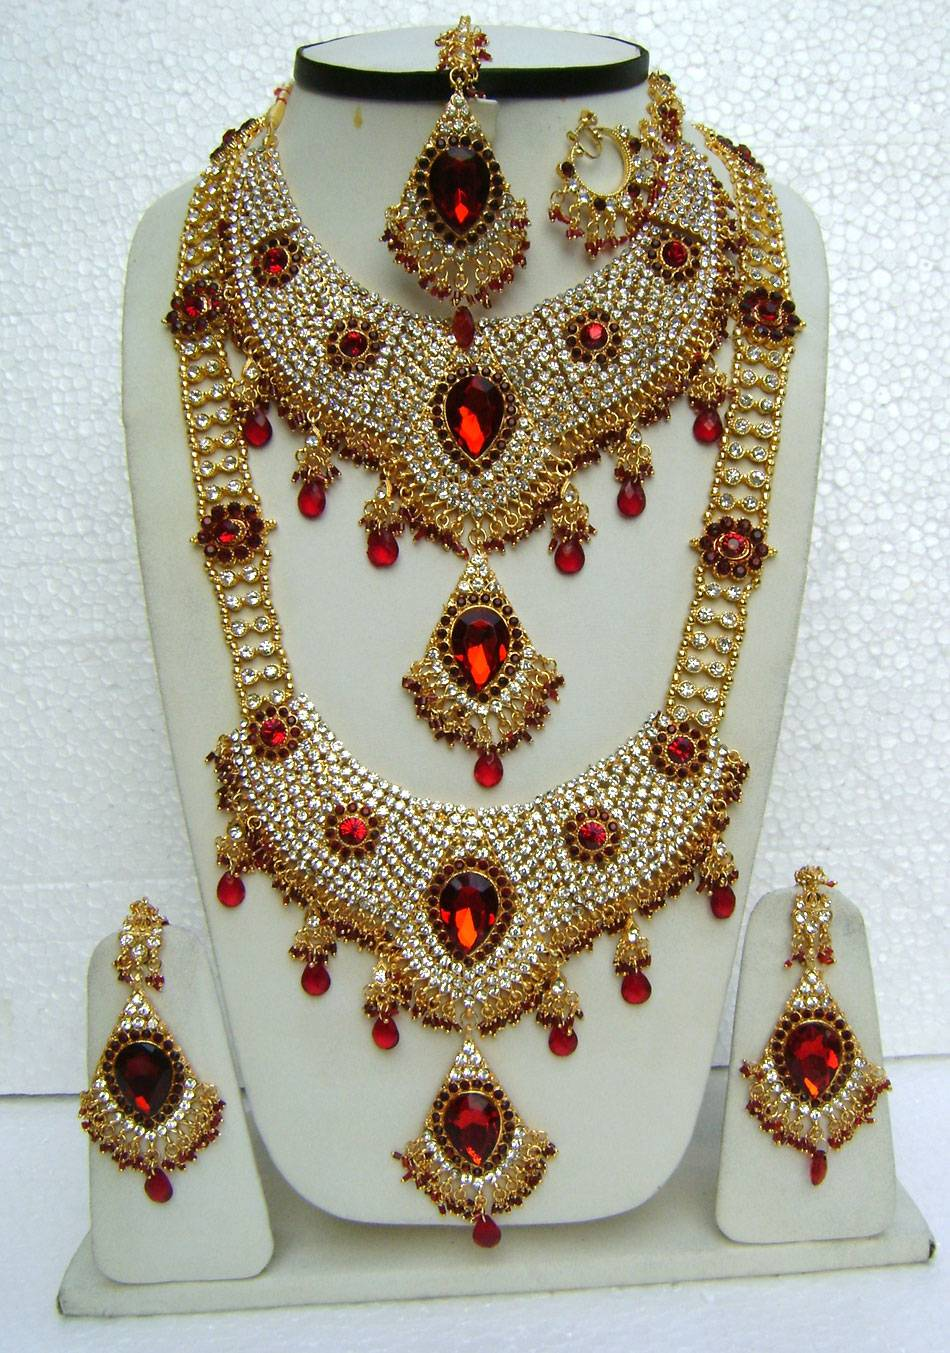 AMERICAN DIAMOND JEWELRY SAREES PARTYWEAR KUNDAN NECKLACE WEDDING JEWELLERY SETS